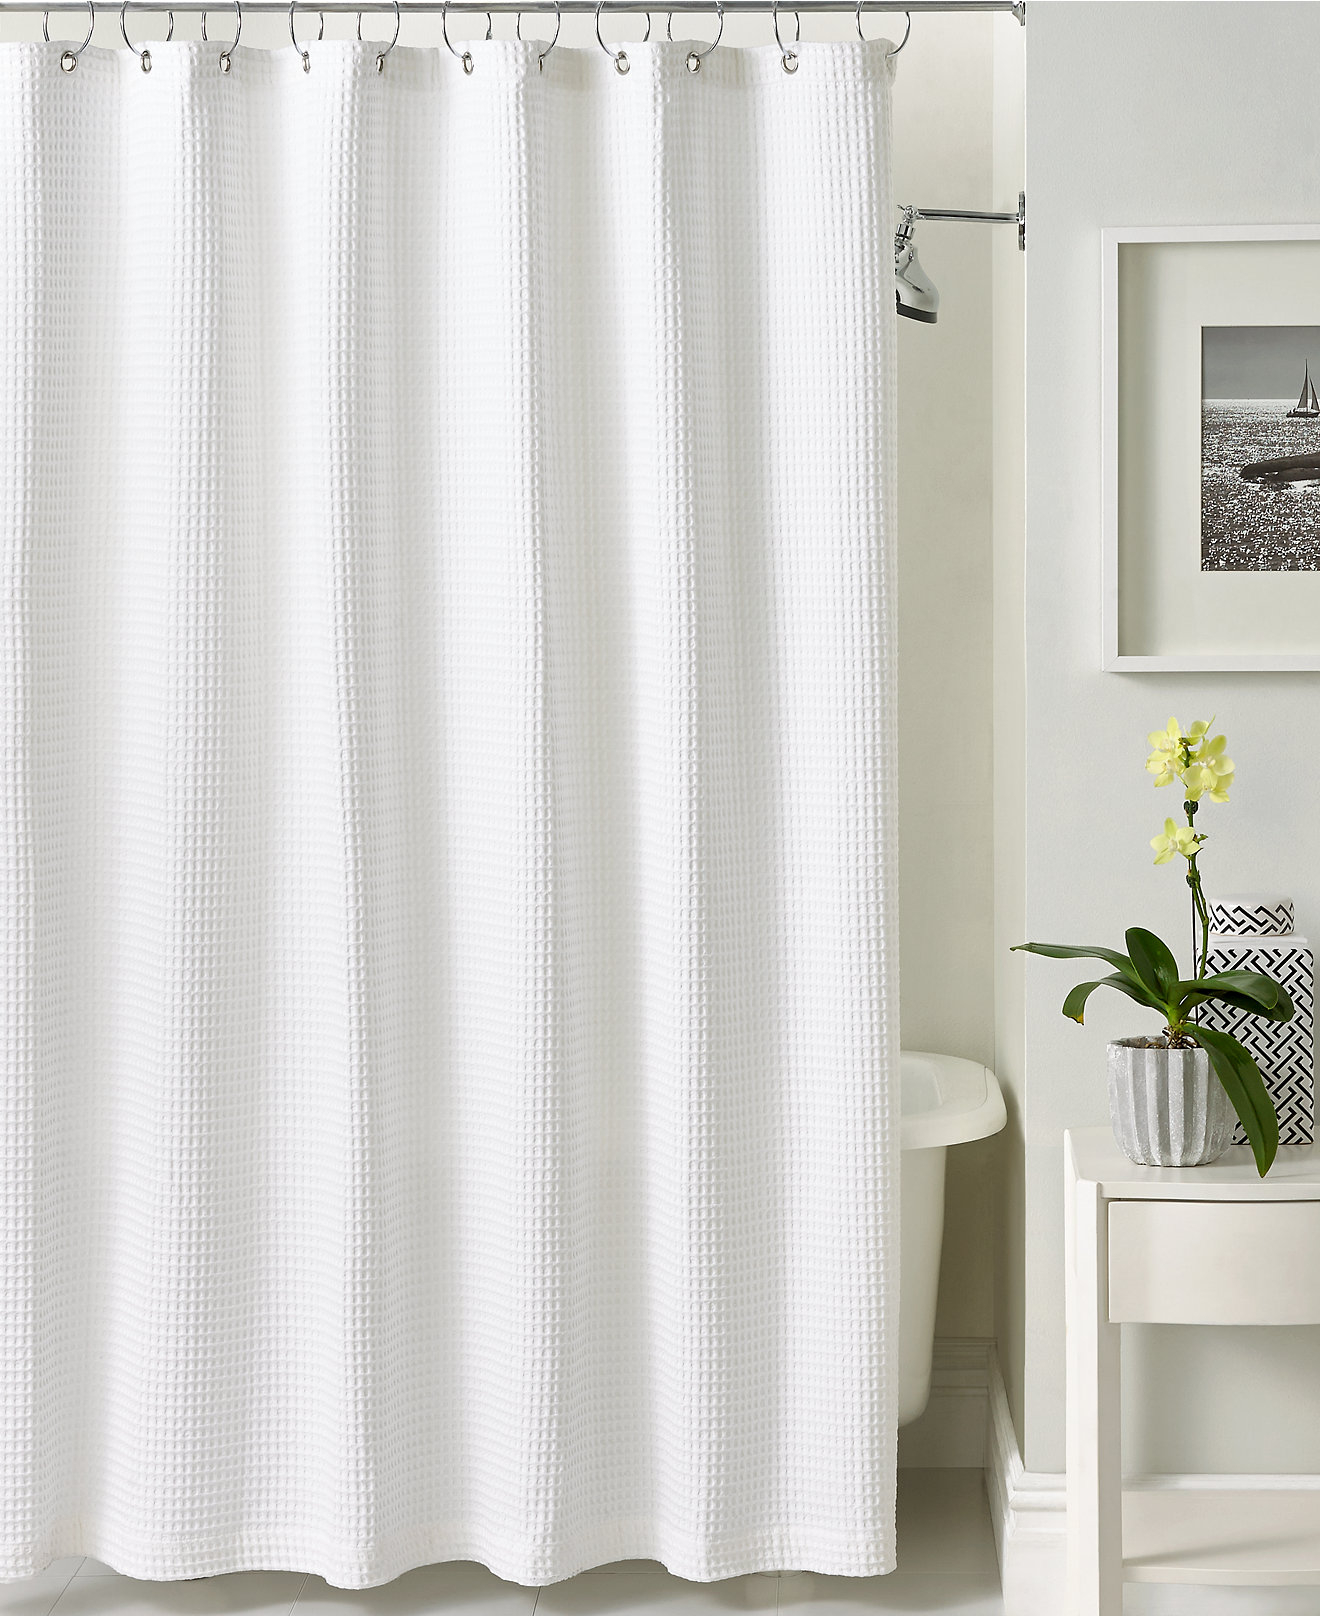 Hotel Collection Shower Curtain Bed Bath Beyond • Shower Curtains ...